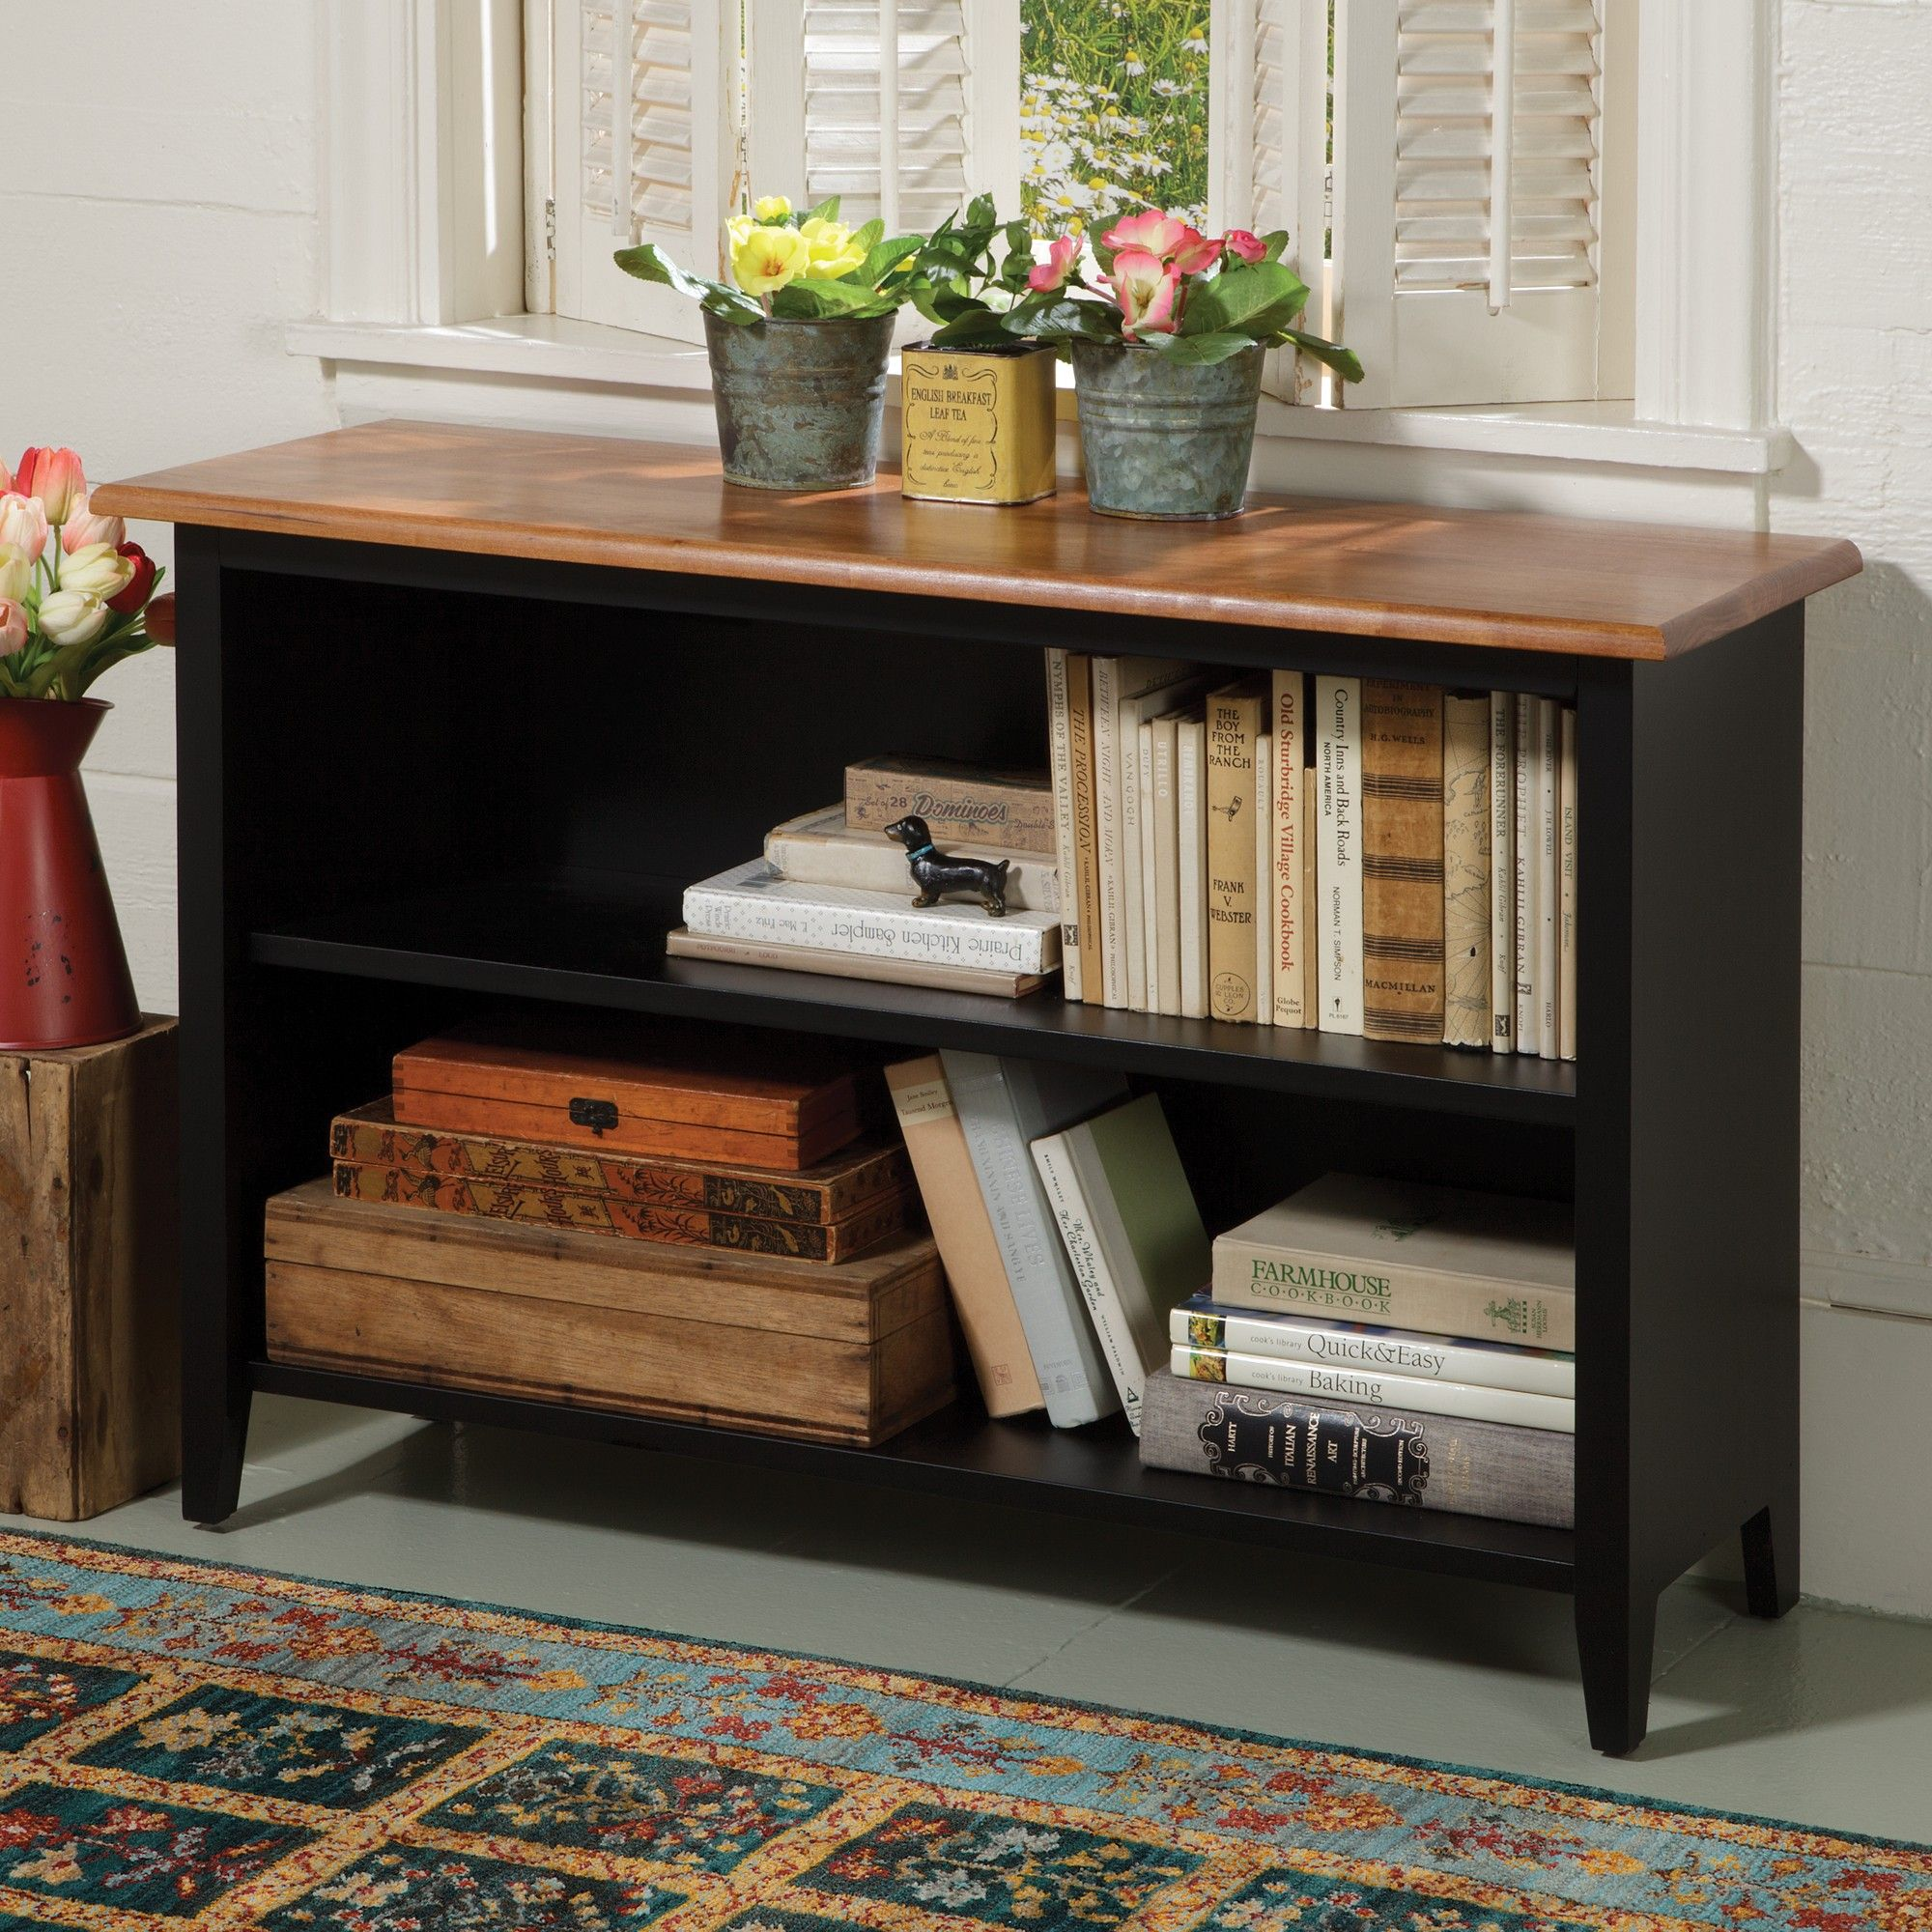 Shaker Low Bookcase | Made In Maine Shaker Furniture | Sturbridge Yankee  Workshop